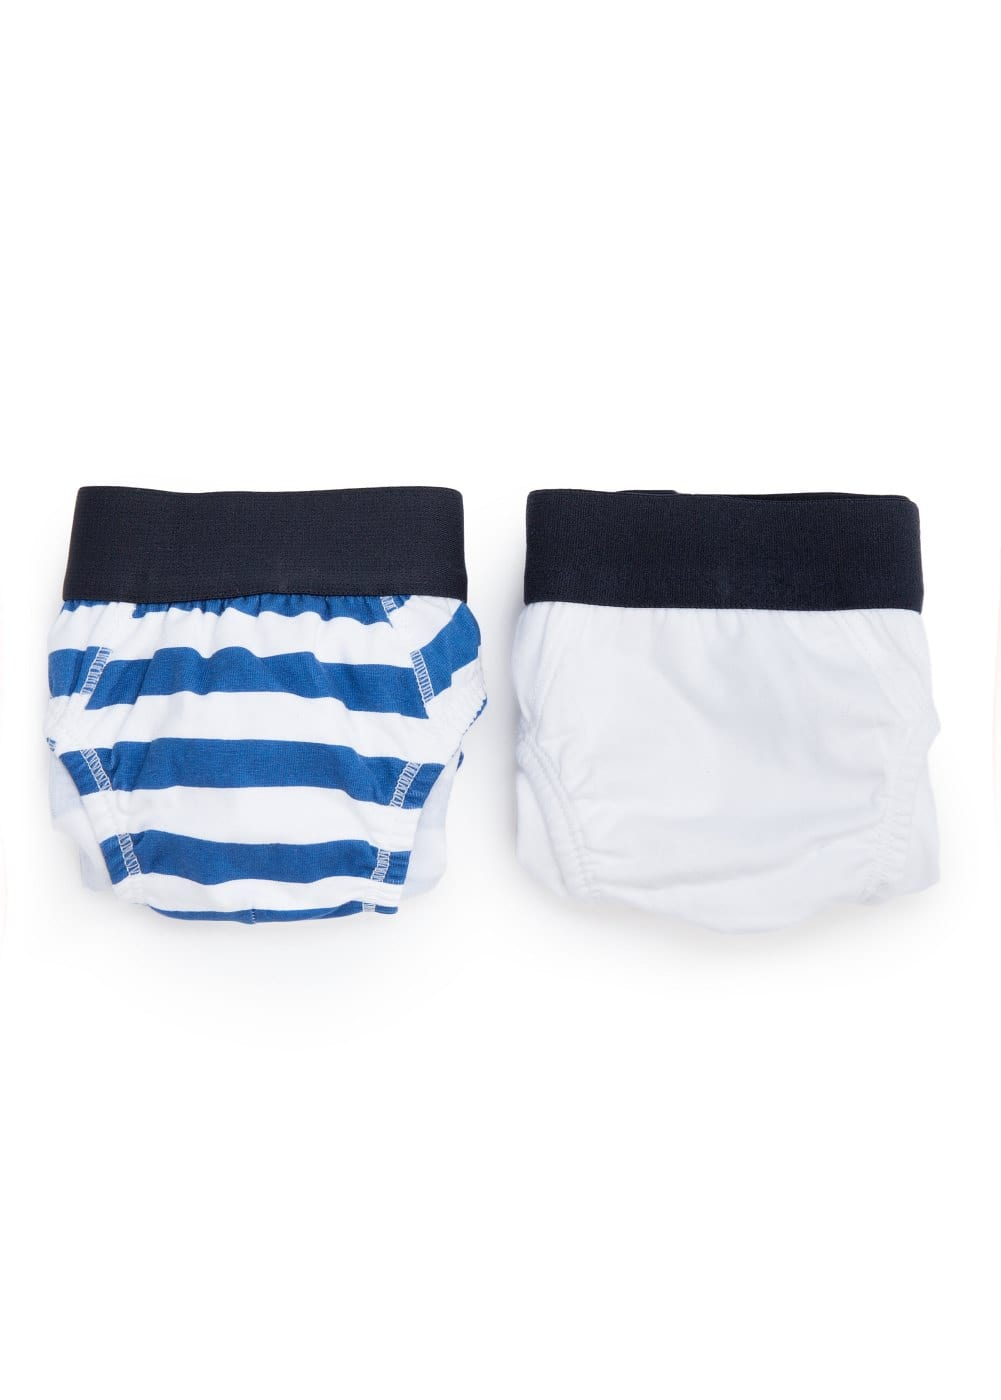 2 pack cotton slips